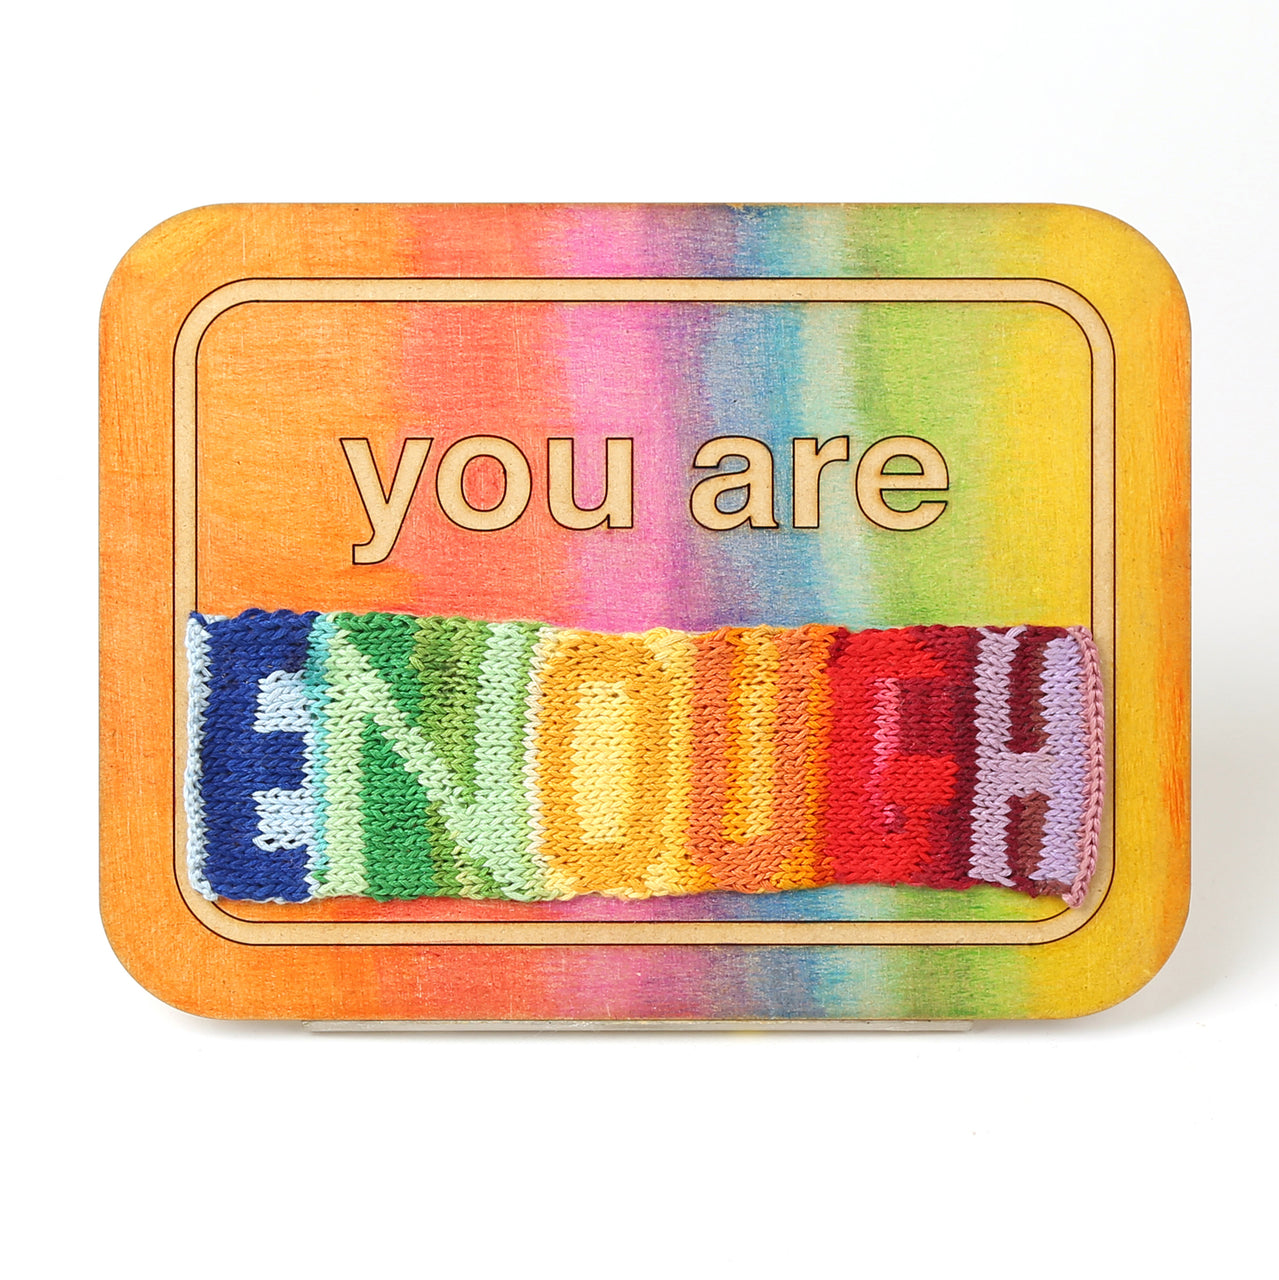 You Are _________ By Phoebe O. Murtagh